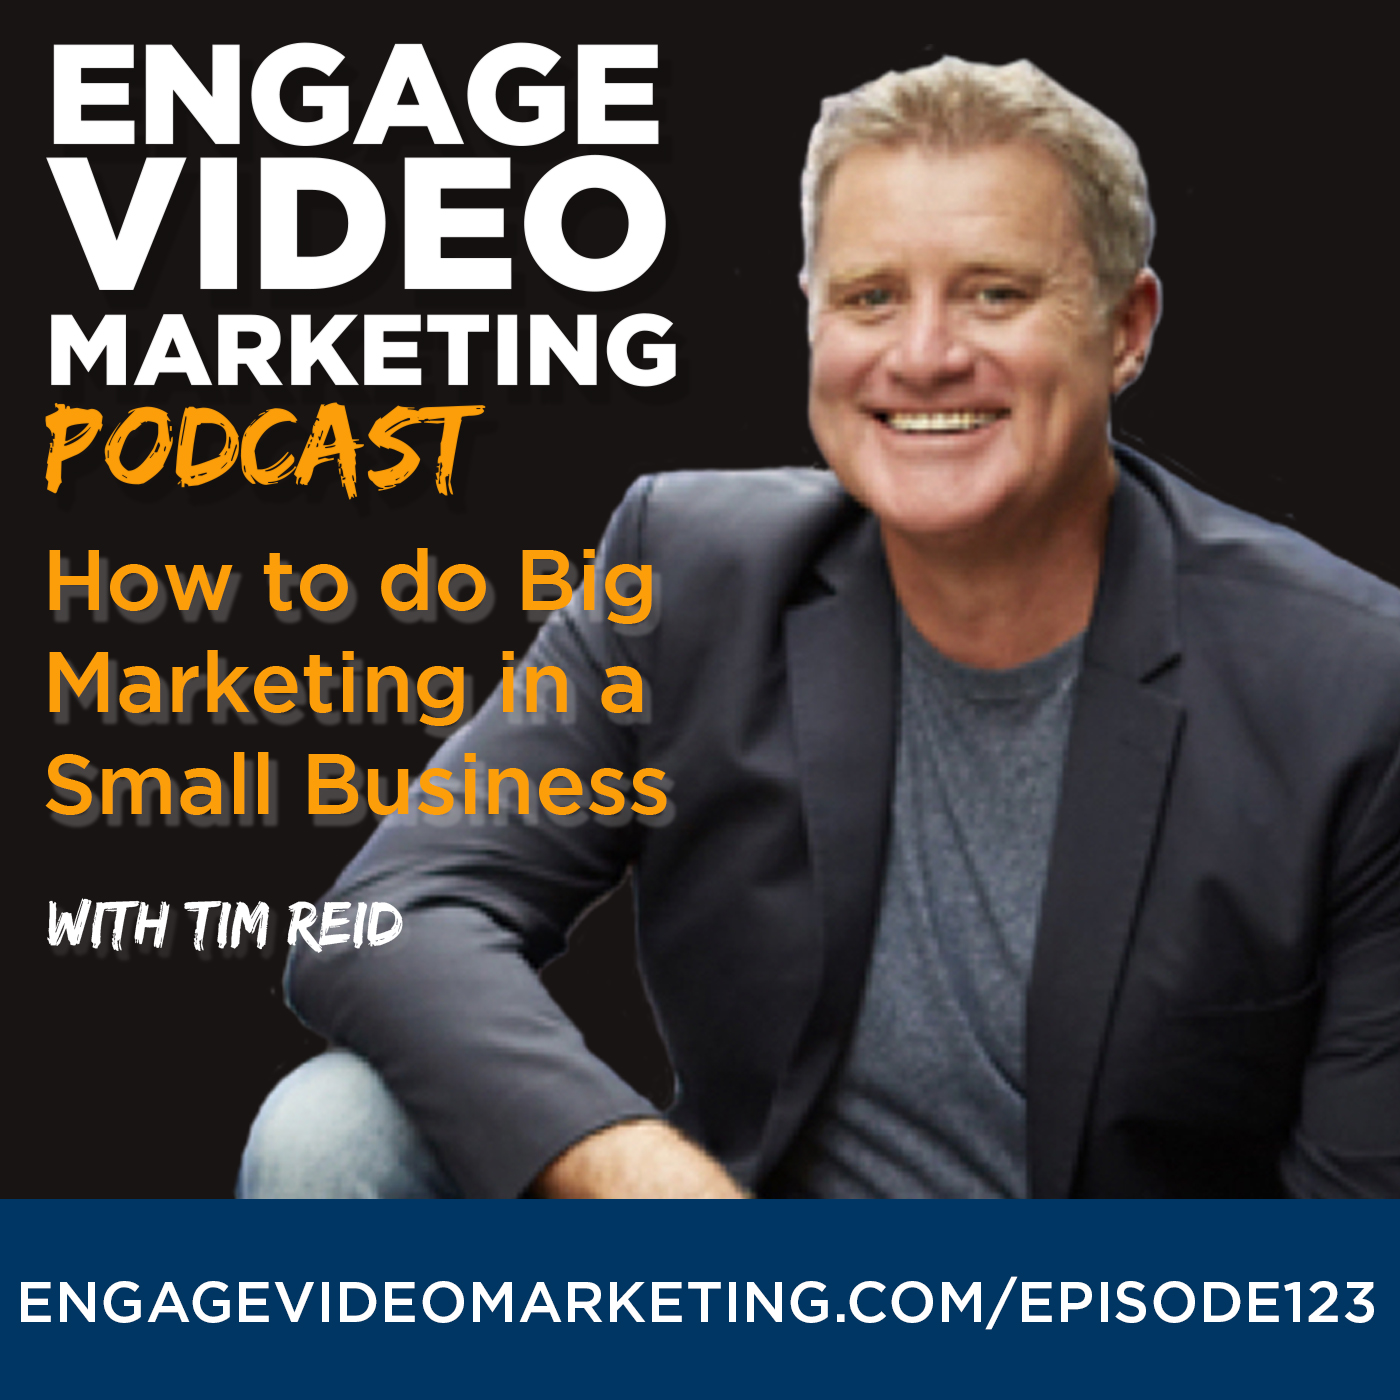 How to Do Big Marketing in a Small Business with Tim Reid